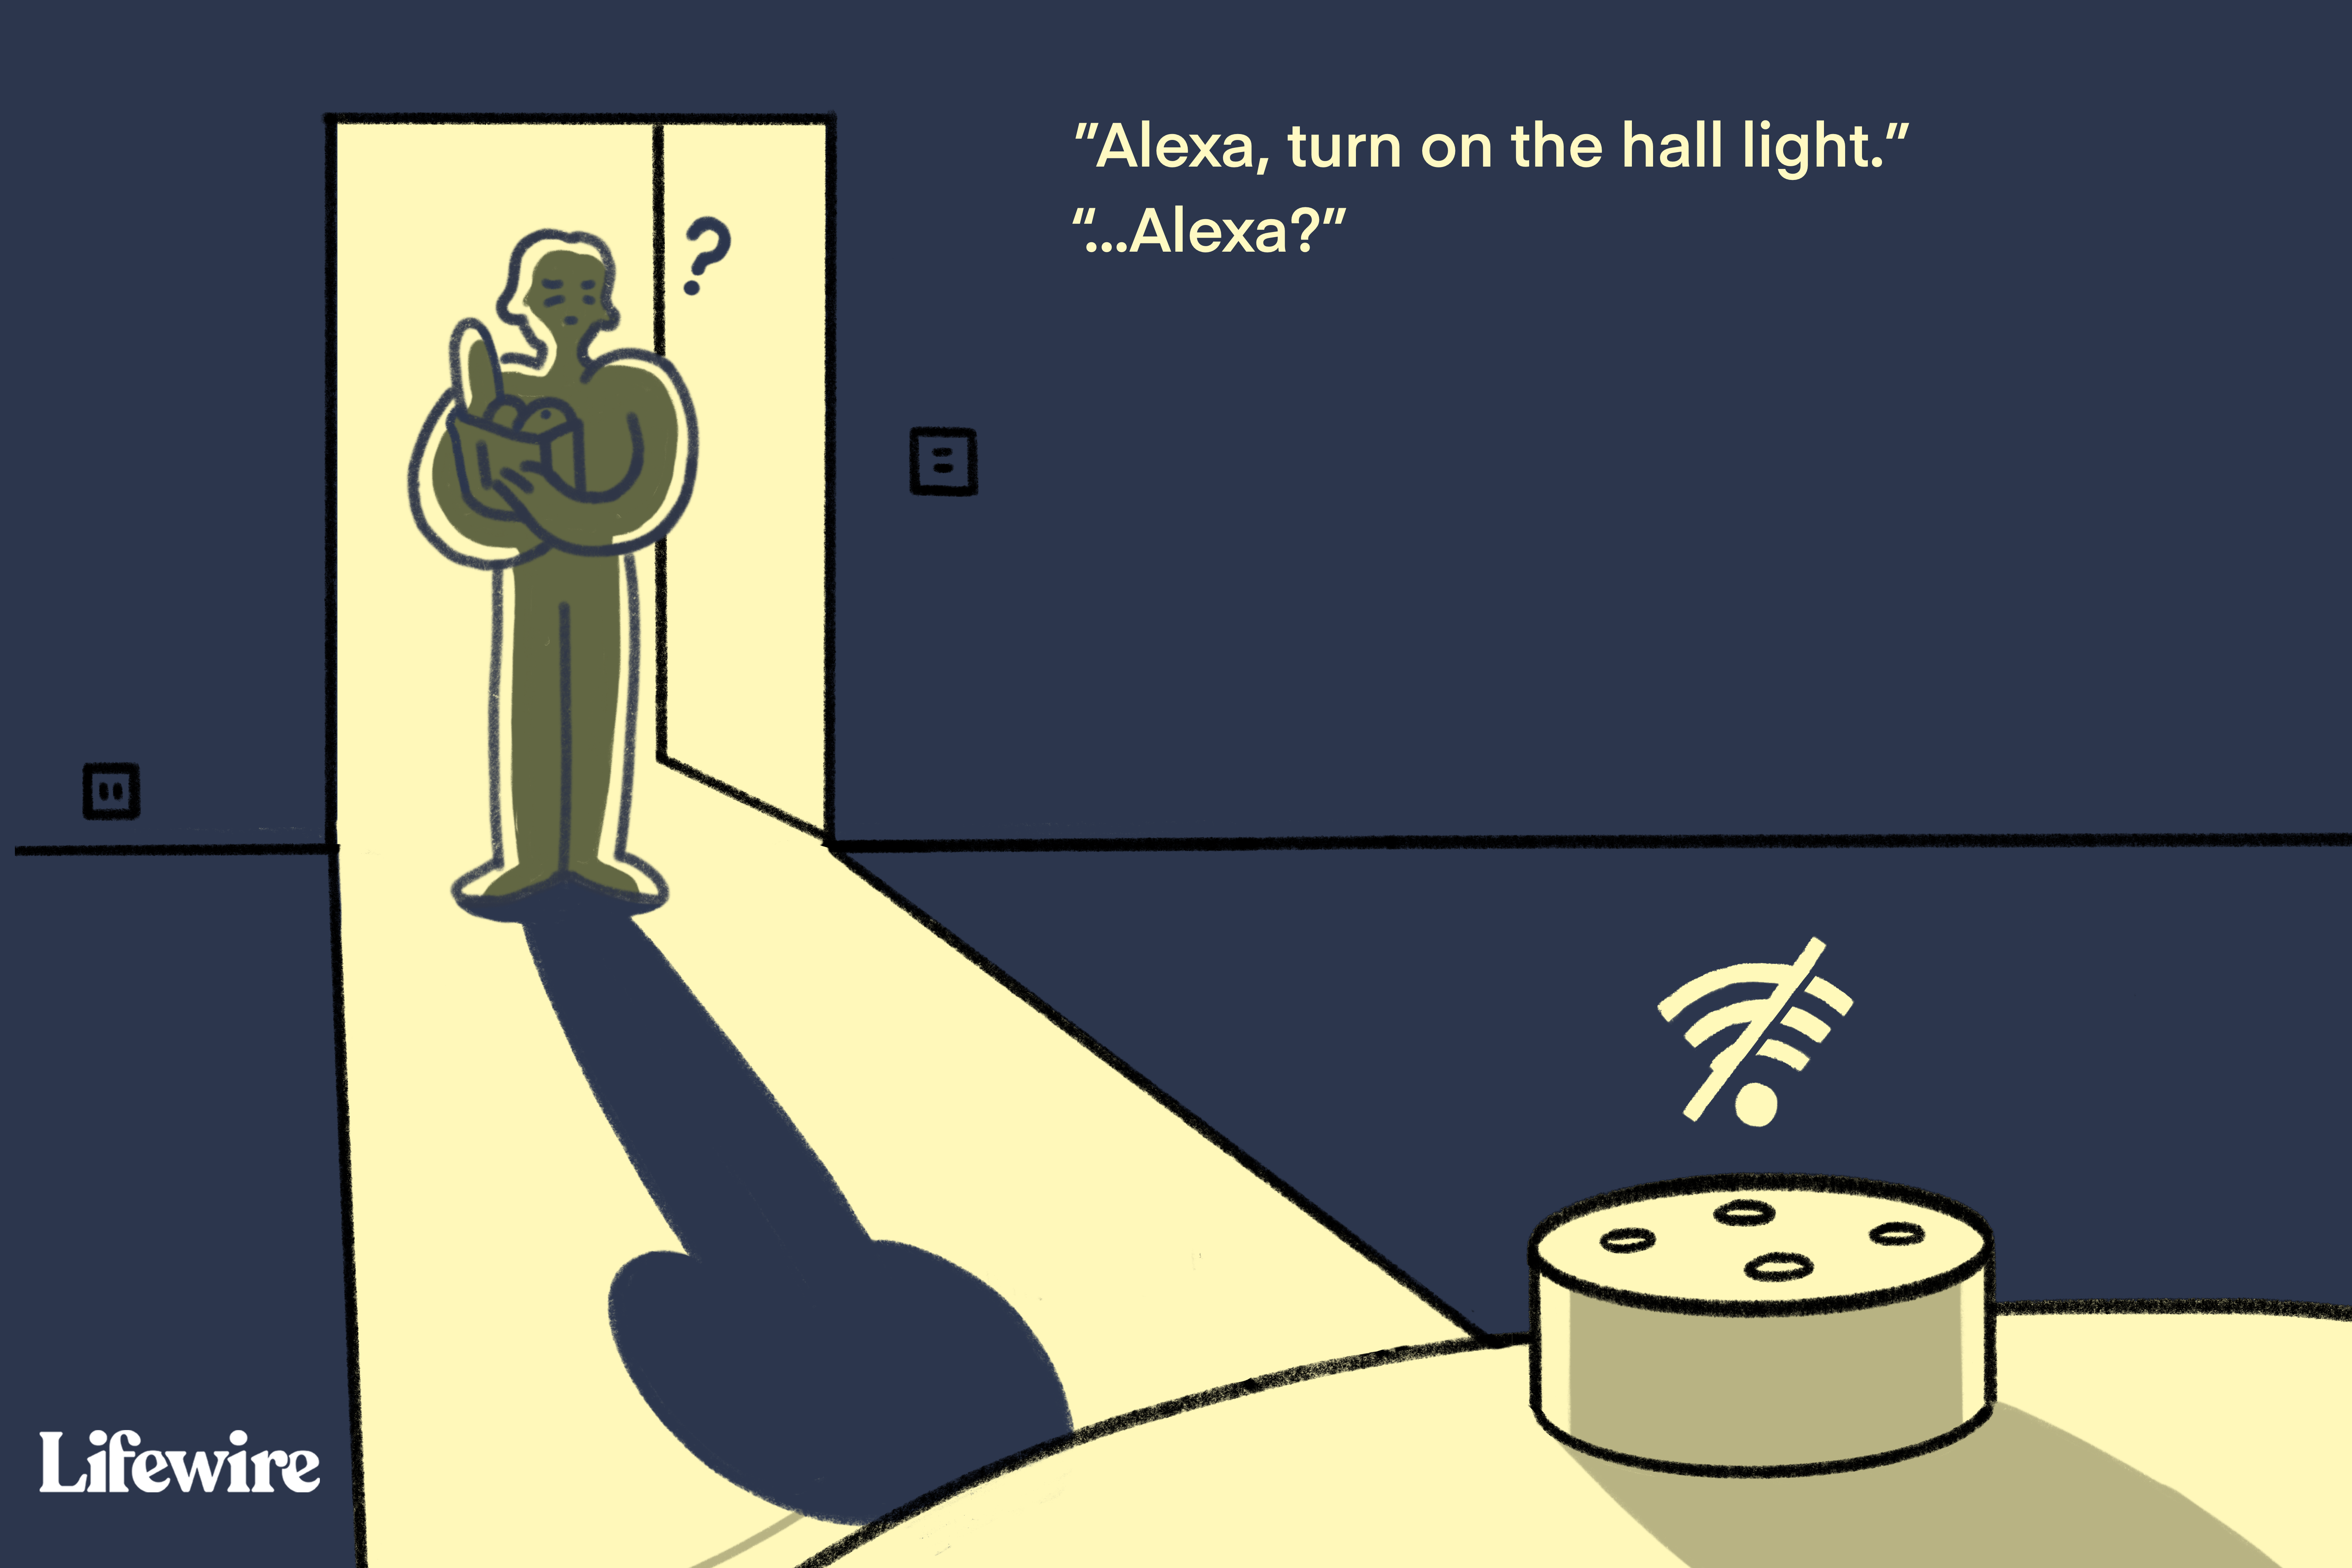 Illustration of a person entering a dark room with an Alexa device not connected